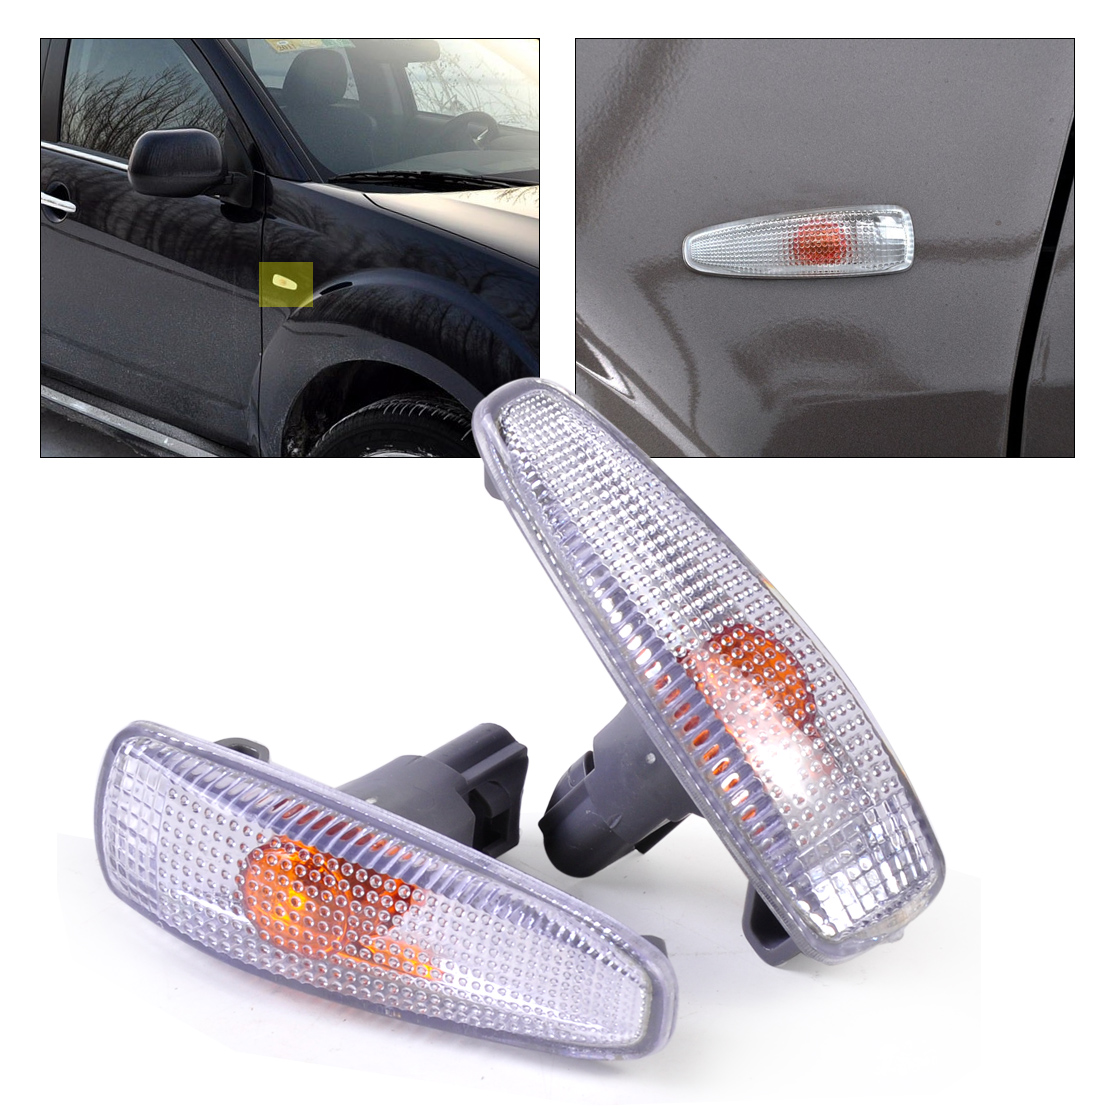 DWCX New 2Pcs Left & Right Turn Signal Lamp Lights Fender Side 8351A047 for Mitsubishi Lancer 2008 2009 2010 2011 2012 2013 2014 new 2pcs female right left vivid foot mannequin jewerly display model art sketch